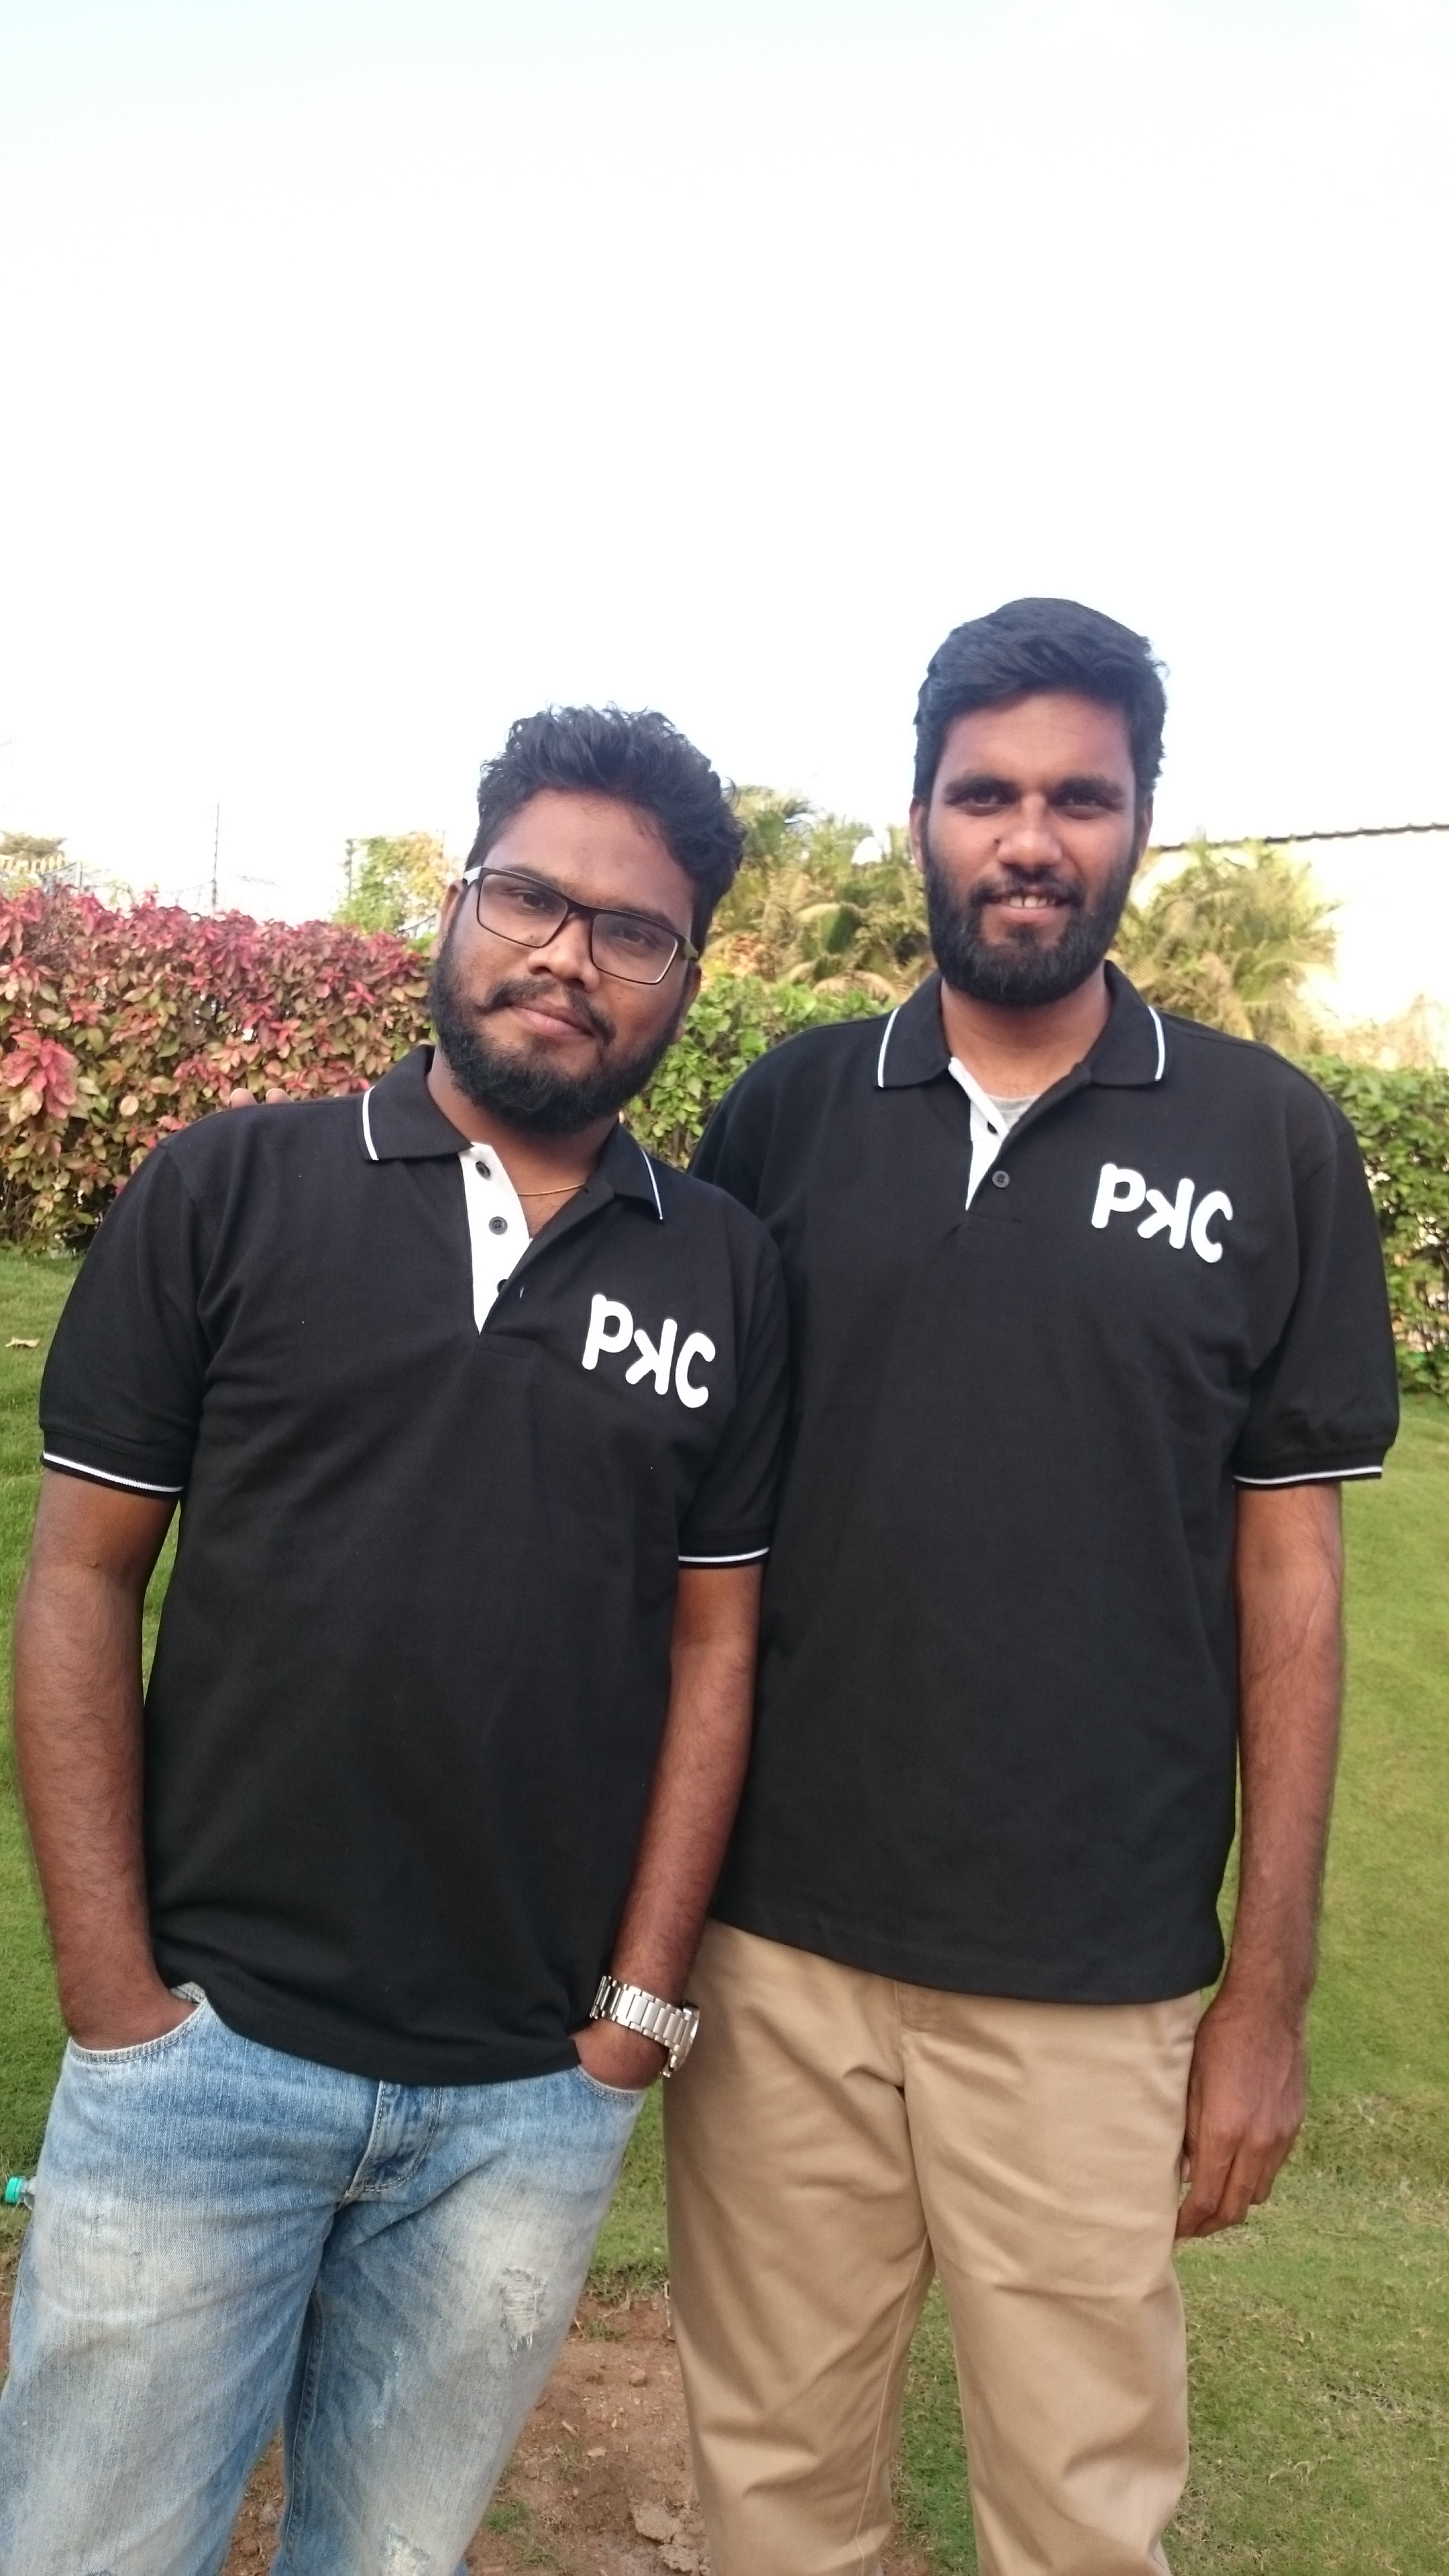 The Founders (from left): Premanth Kundurthi & Chaithanya